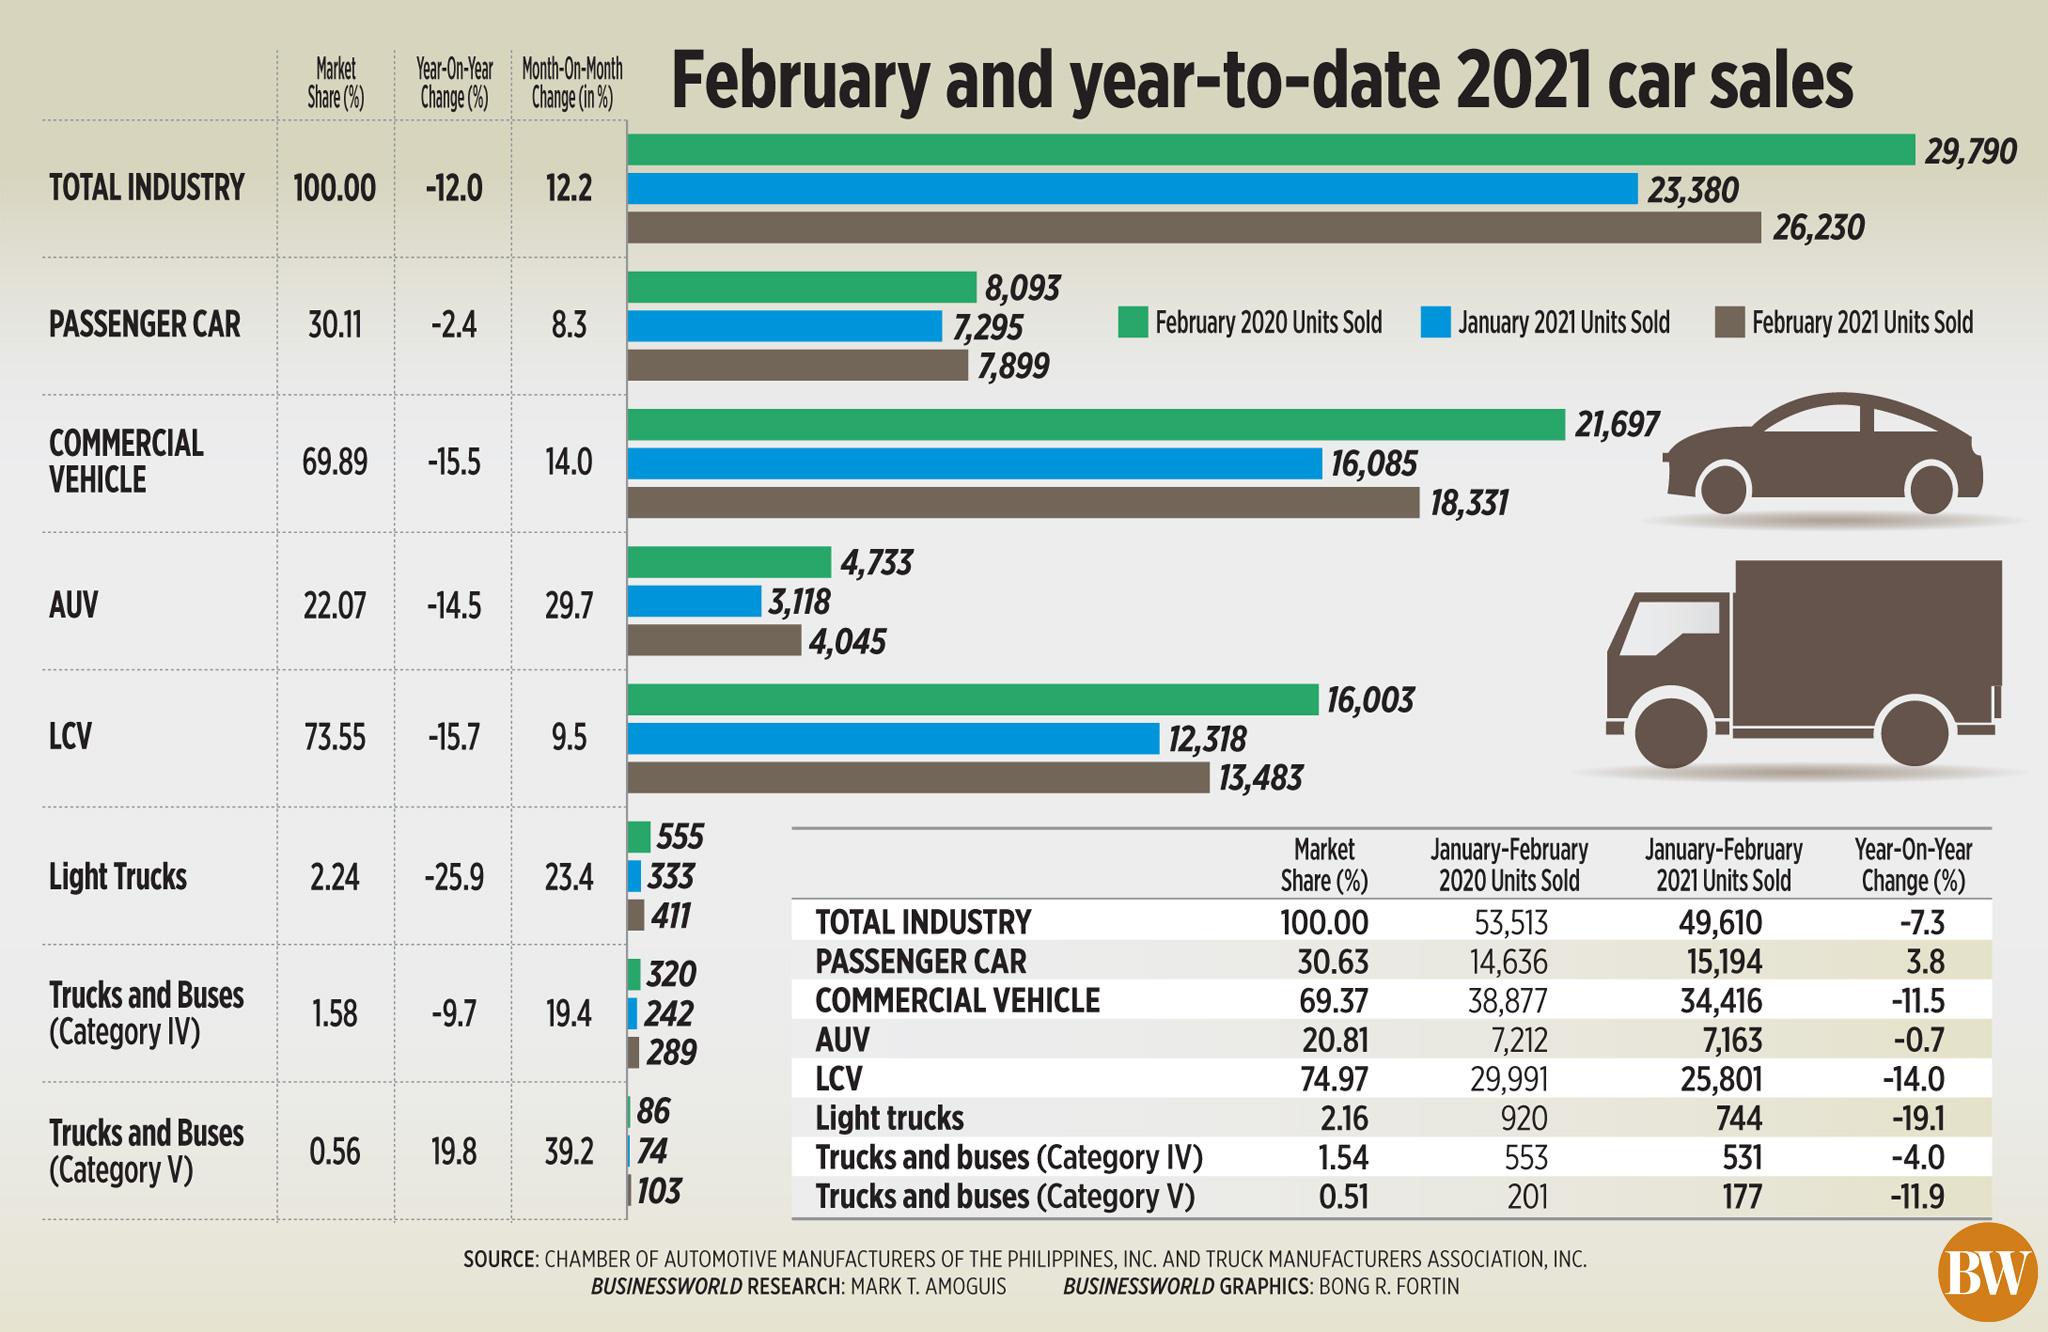 February and year-to-date 2021 car sales